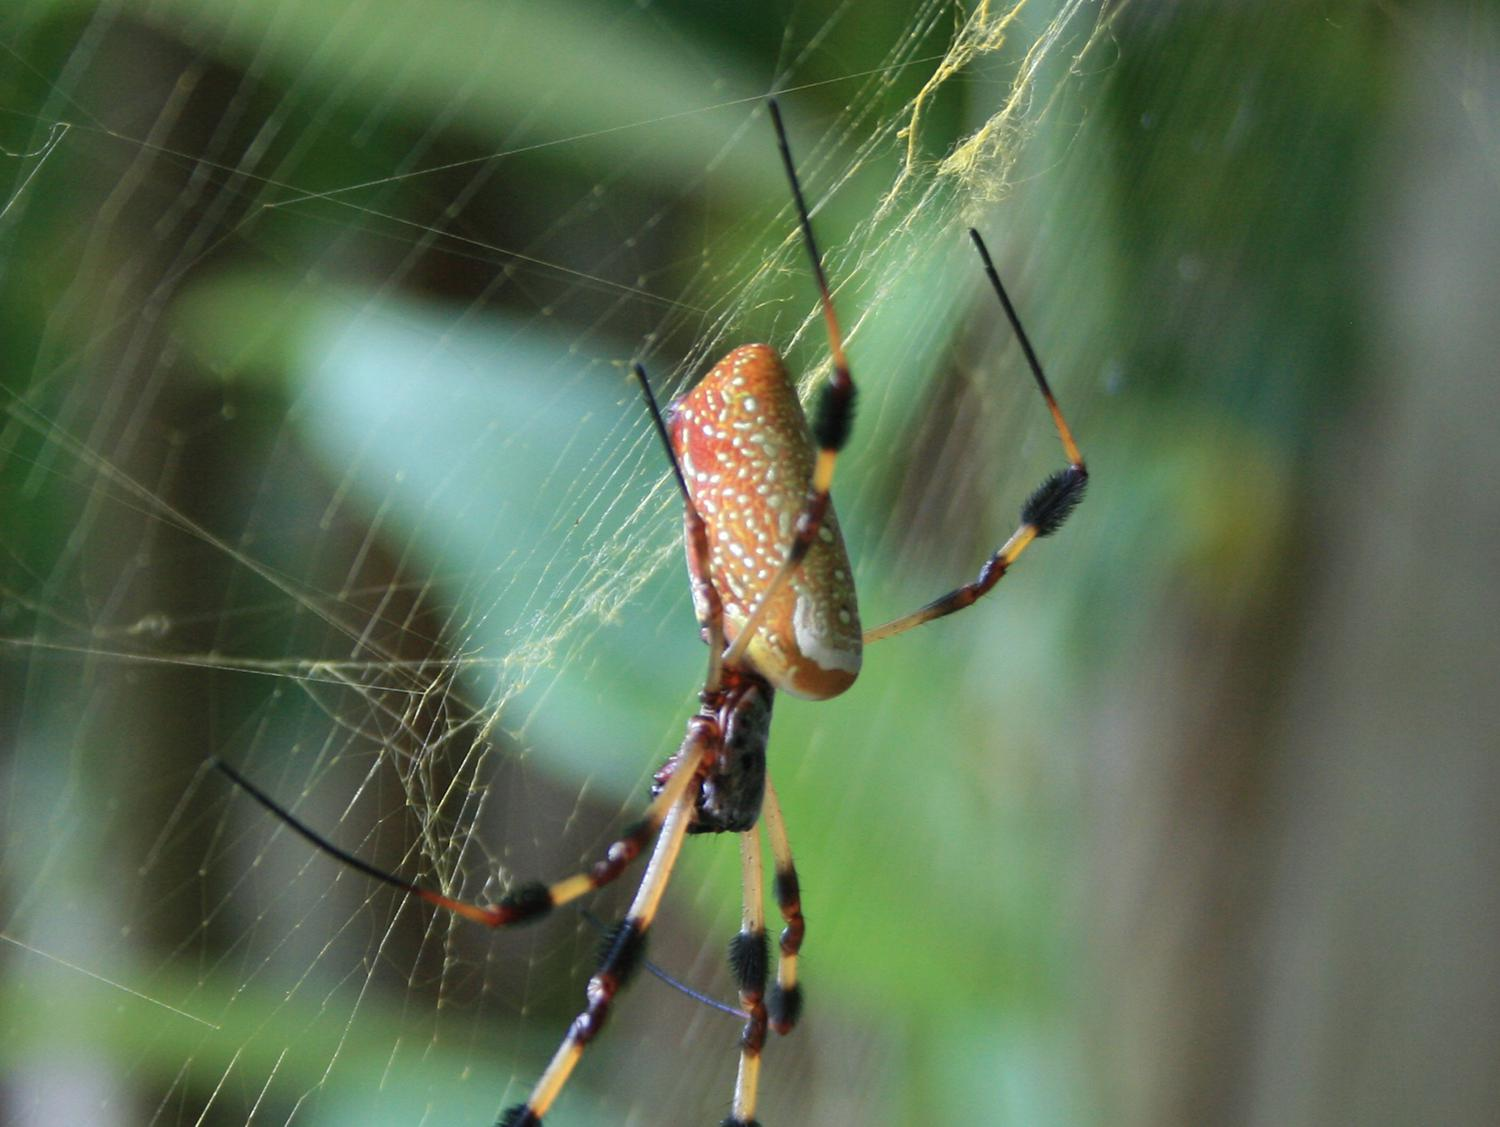 The Golden Silk Orb Weaver is found all along the Gulf Coast, as well as Central and South America. (Photo by MSU Extension/Gary Bachman)